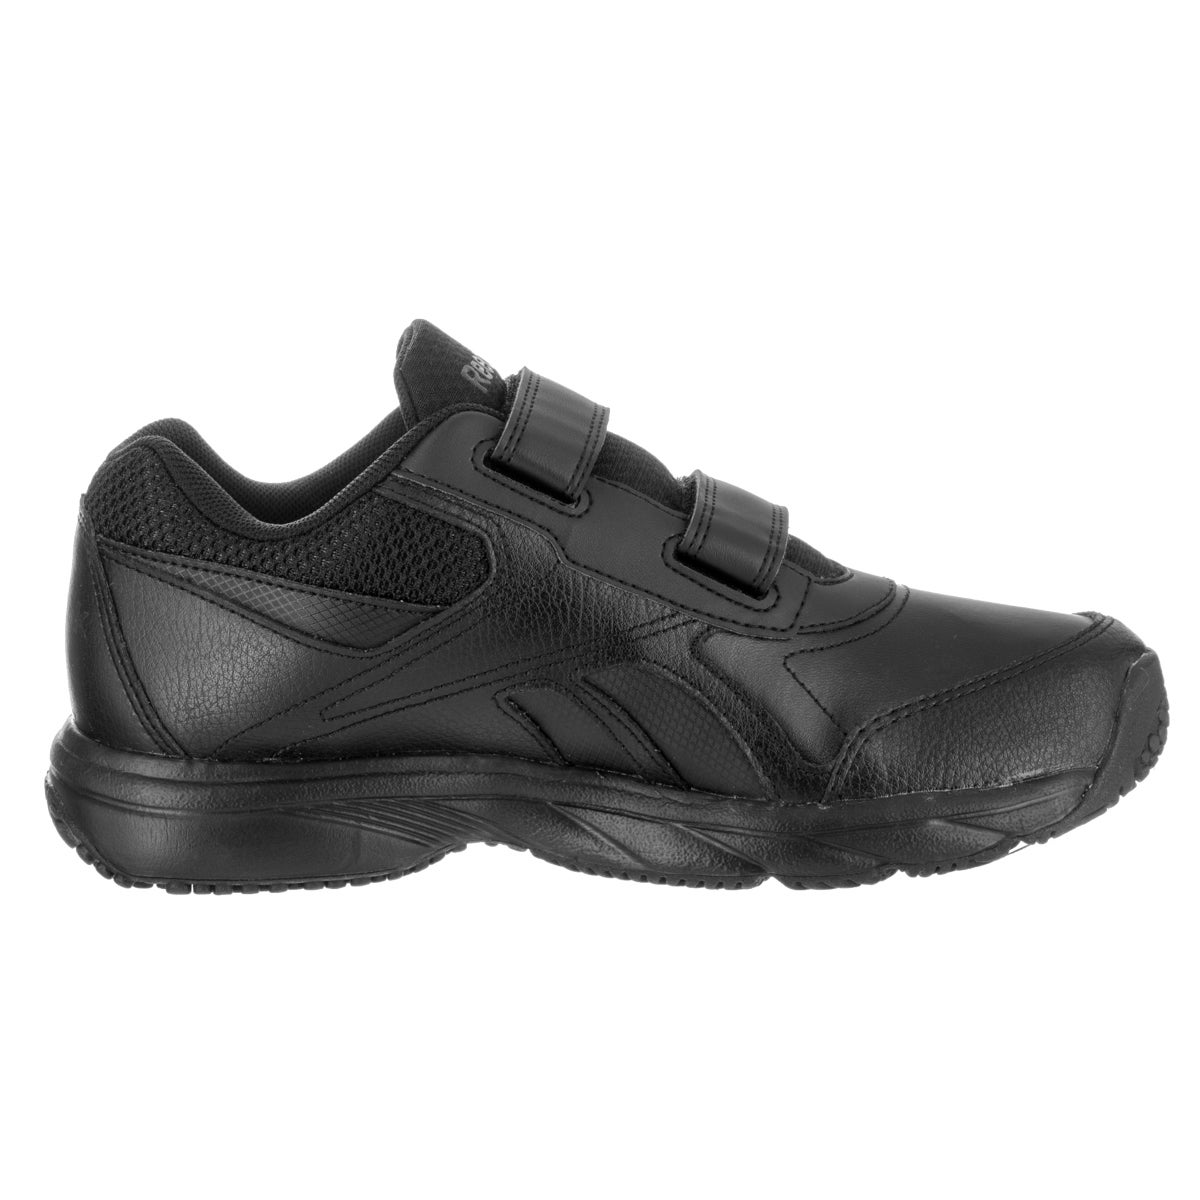 Shop Reebok Women s Work N Cushion KC 2.0 Black Leather Casual Shoe - Free  Shipping Today - Overstock.com - 13881307 bce6ad881